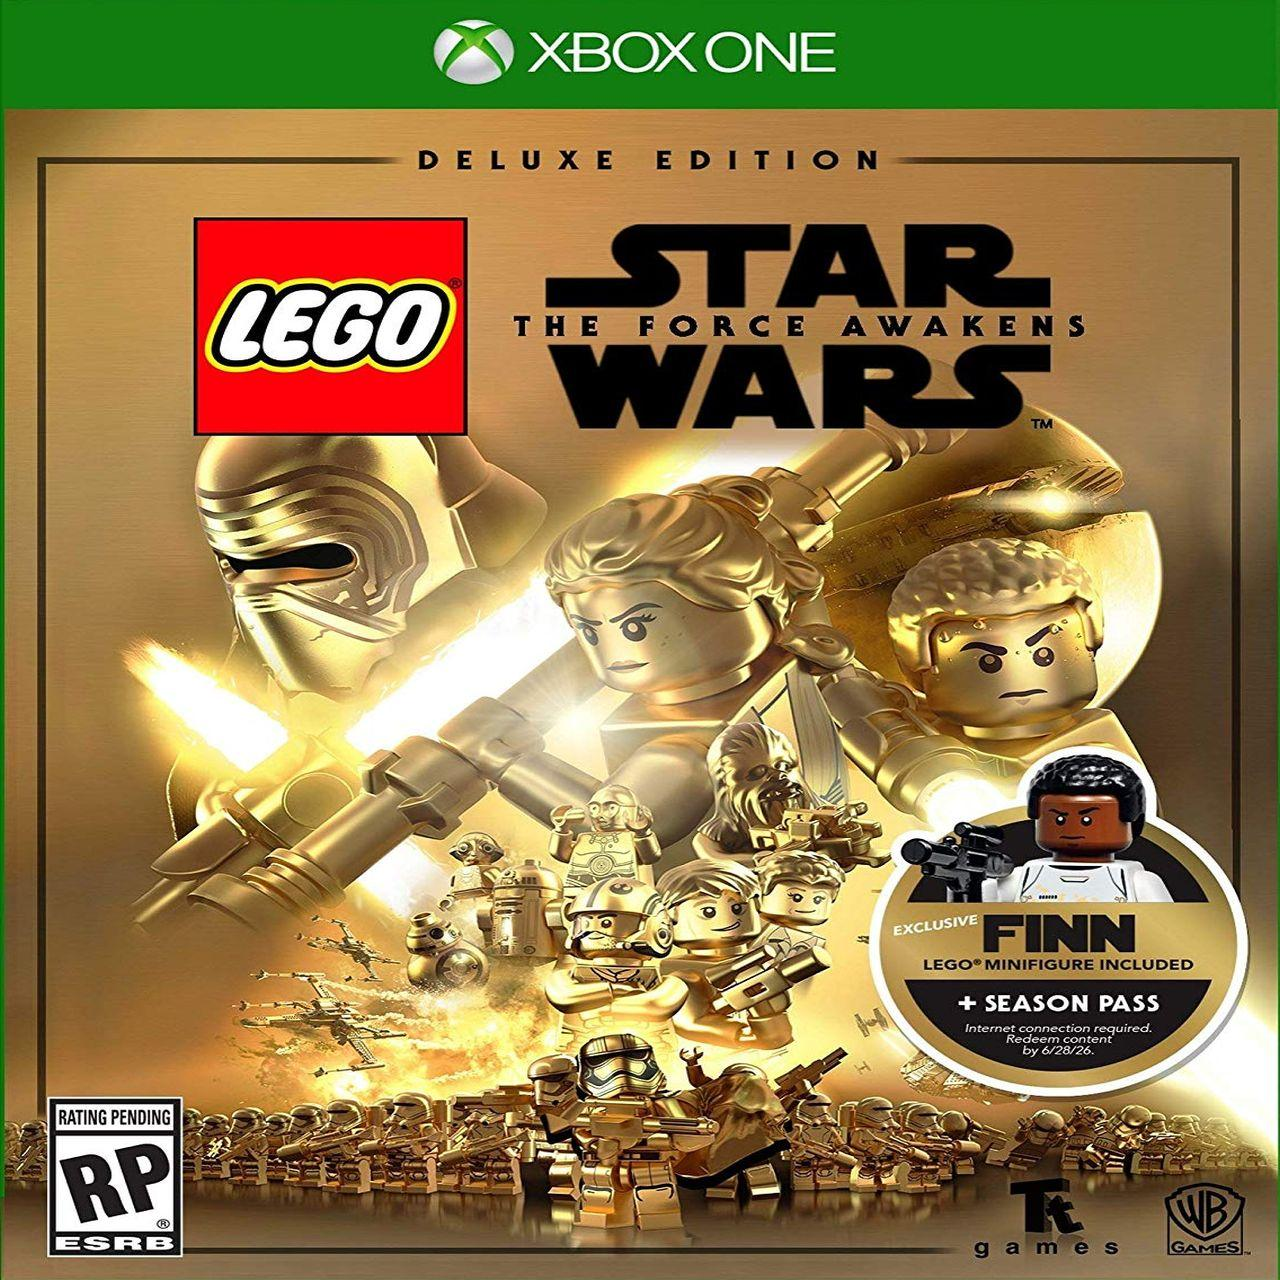 Lego Star Wars The Force Awakens Deluxe Edition SUB XBOX ONE (NEW)